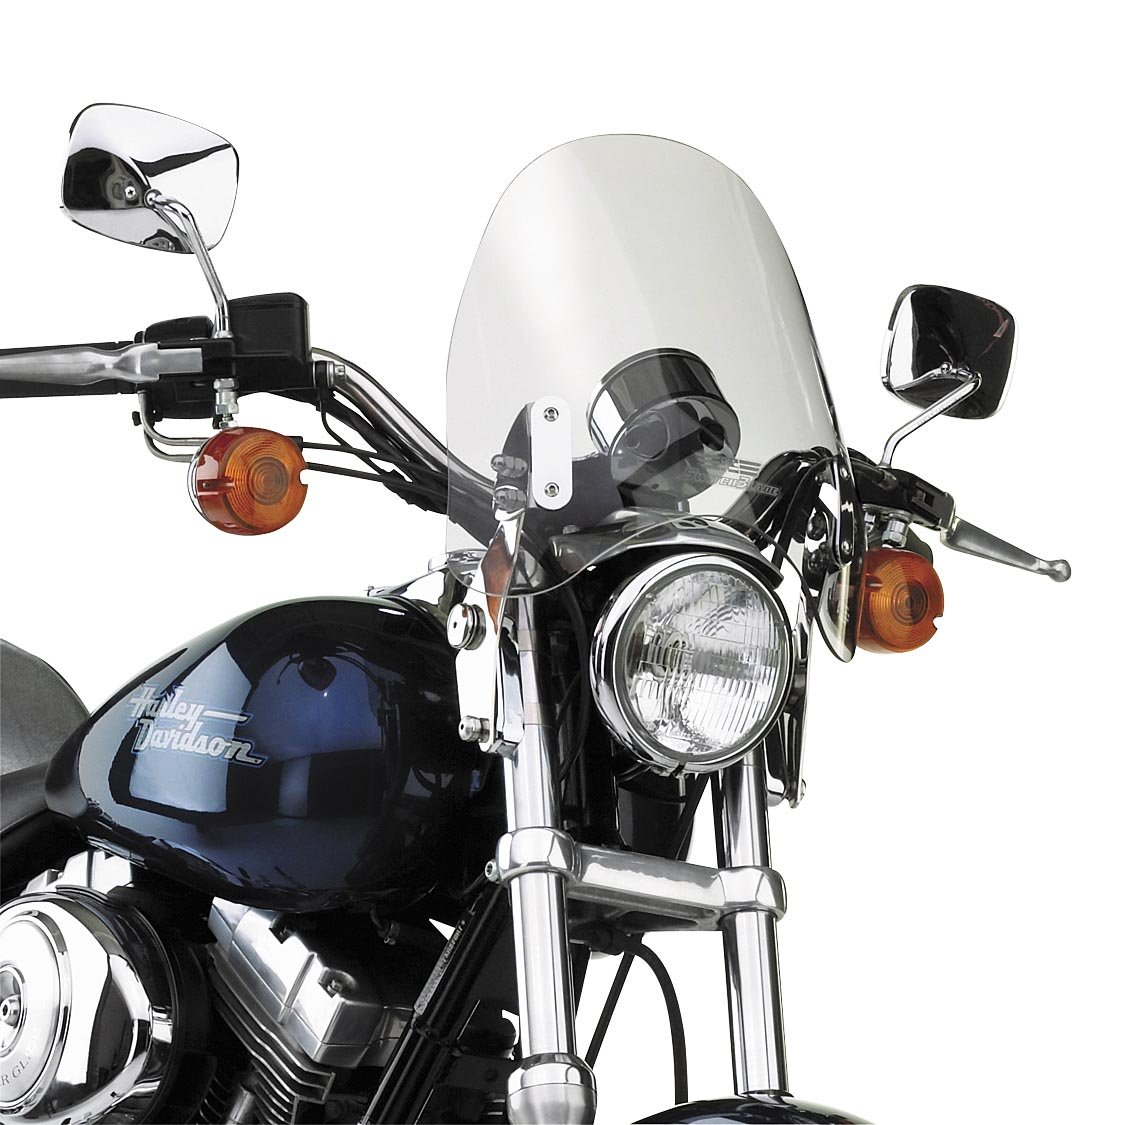 National Cycle SwitchBlade Deflector Windshield For Various Metric Motorcycles (See Specifications) - Clear - N21903 4333345399